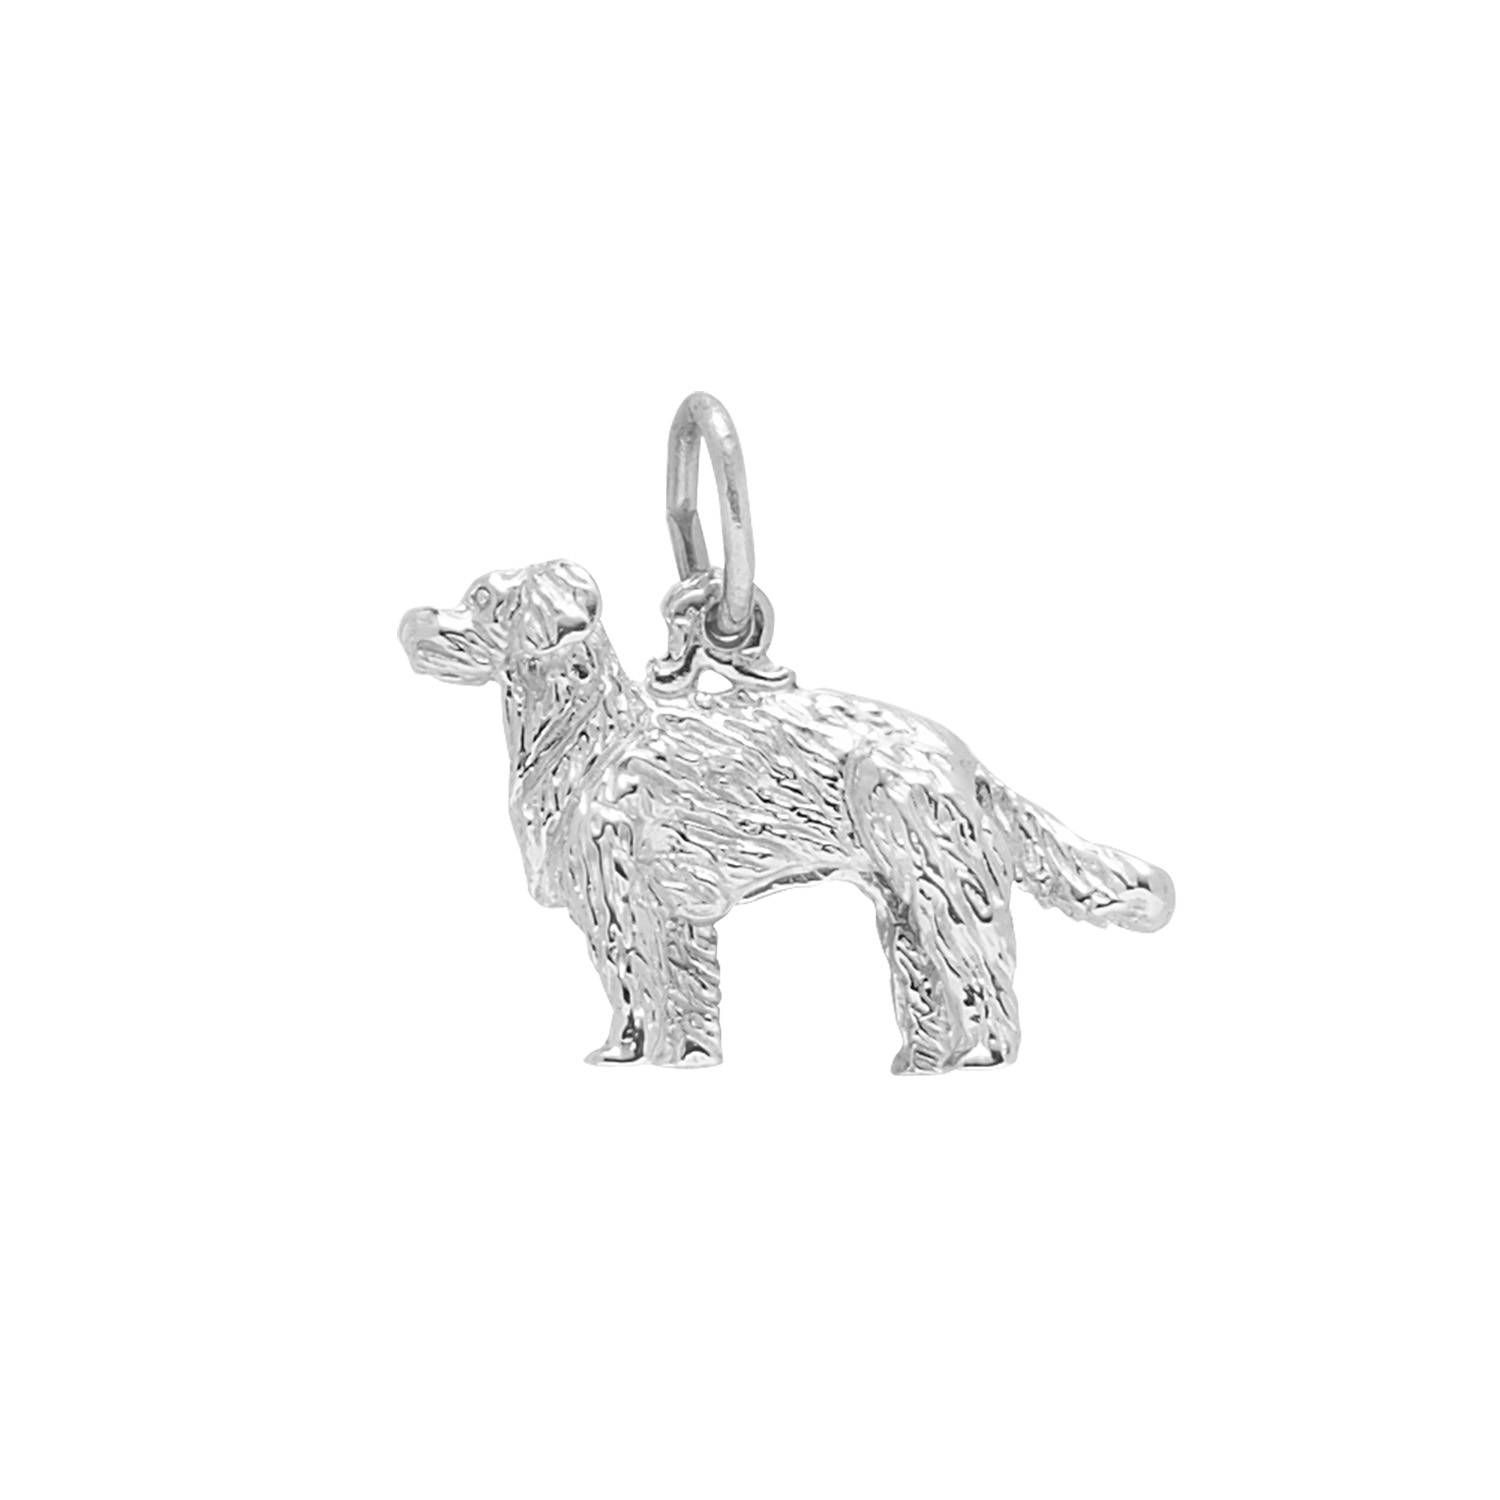 Golden Retriever Charm In Sterling Silver By Rembrandt Rembrandt